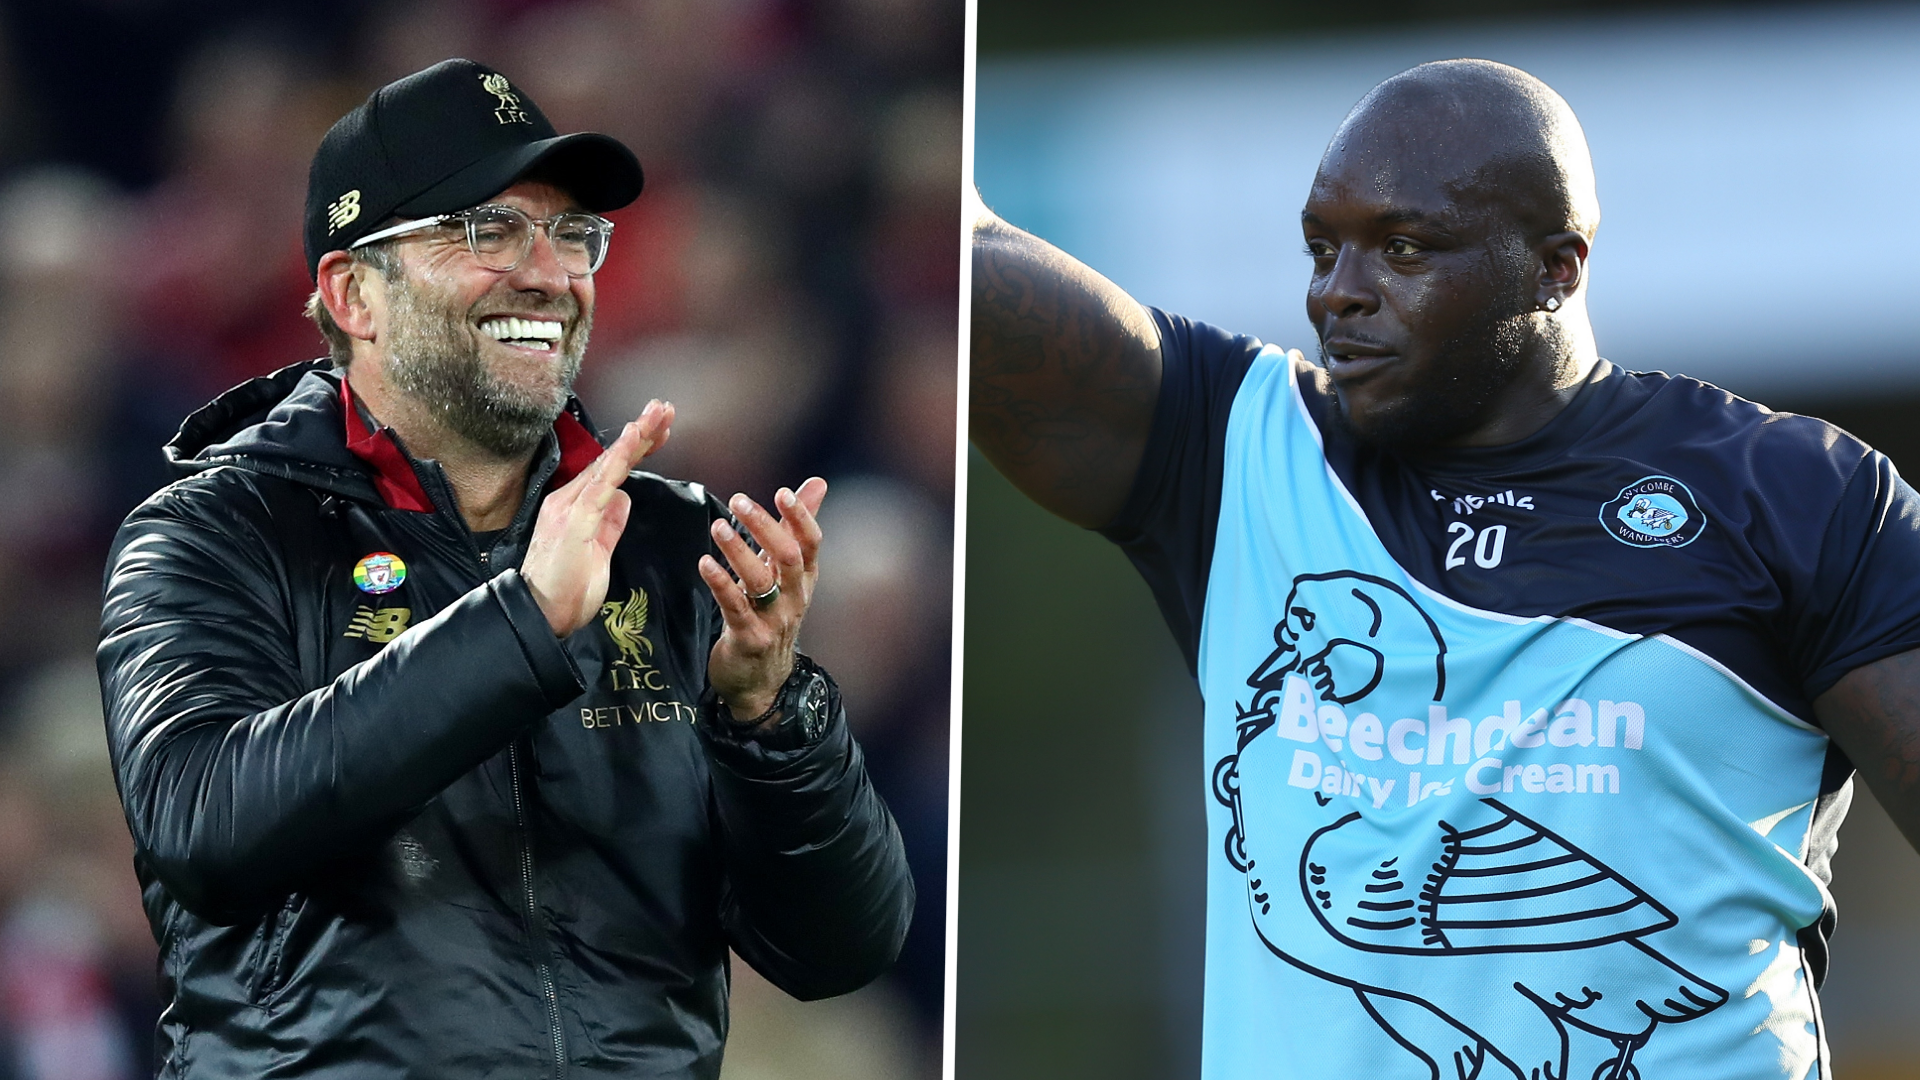 Klopp contacts Akinfenwa on WhatsApp to celebrate Wycombe's Champioship promotion